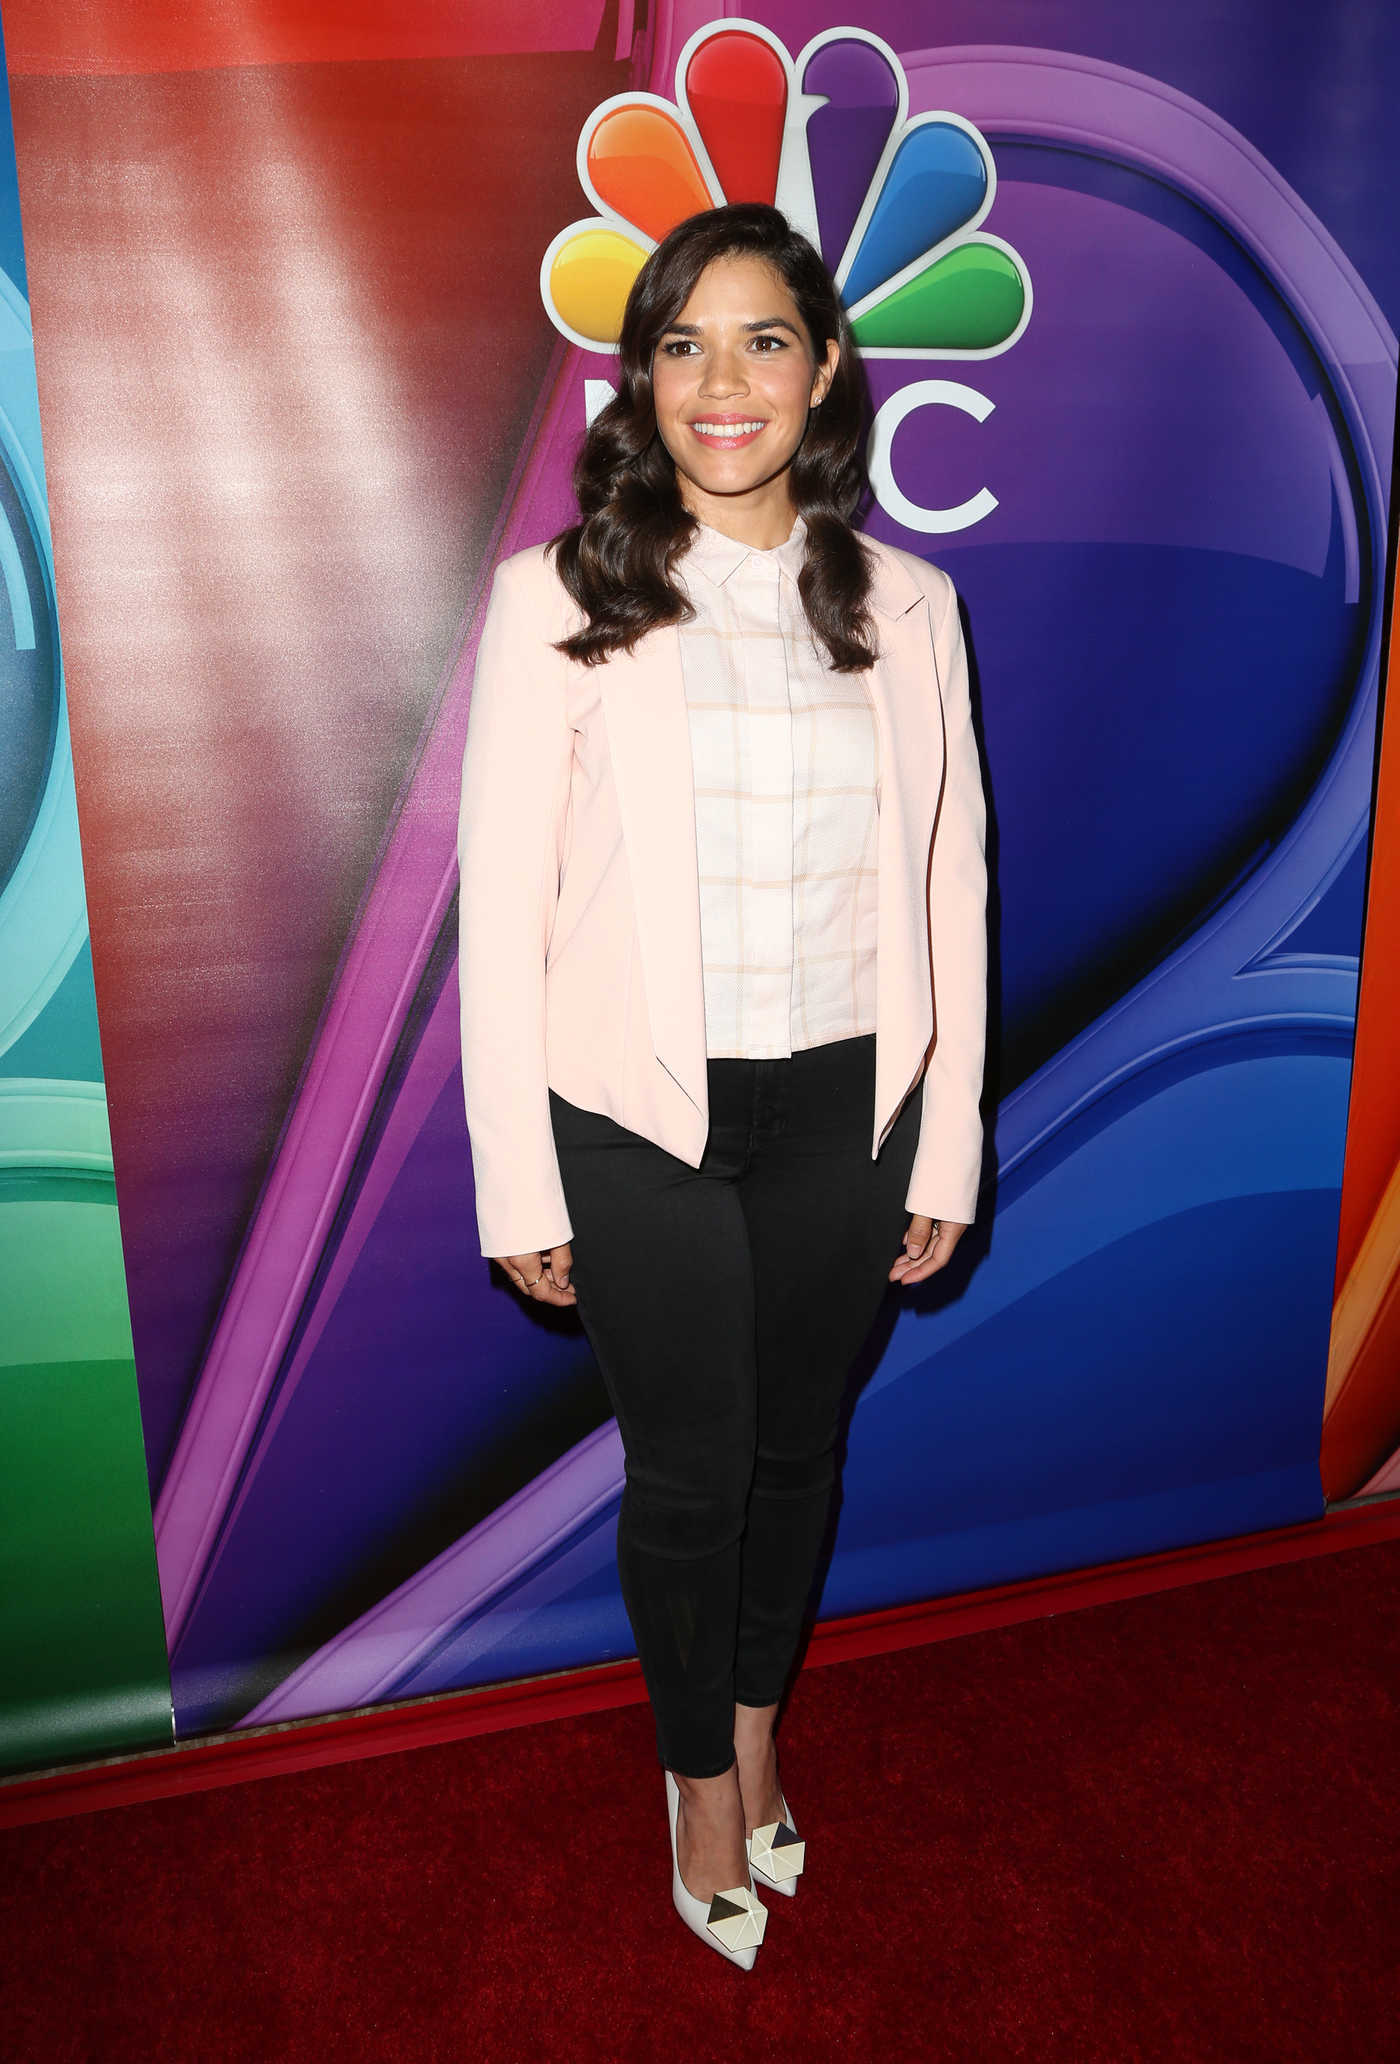 America Ferrera at the NBC Universal Press Tour at Hilton Hotel in Pasadena 08/02/2016